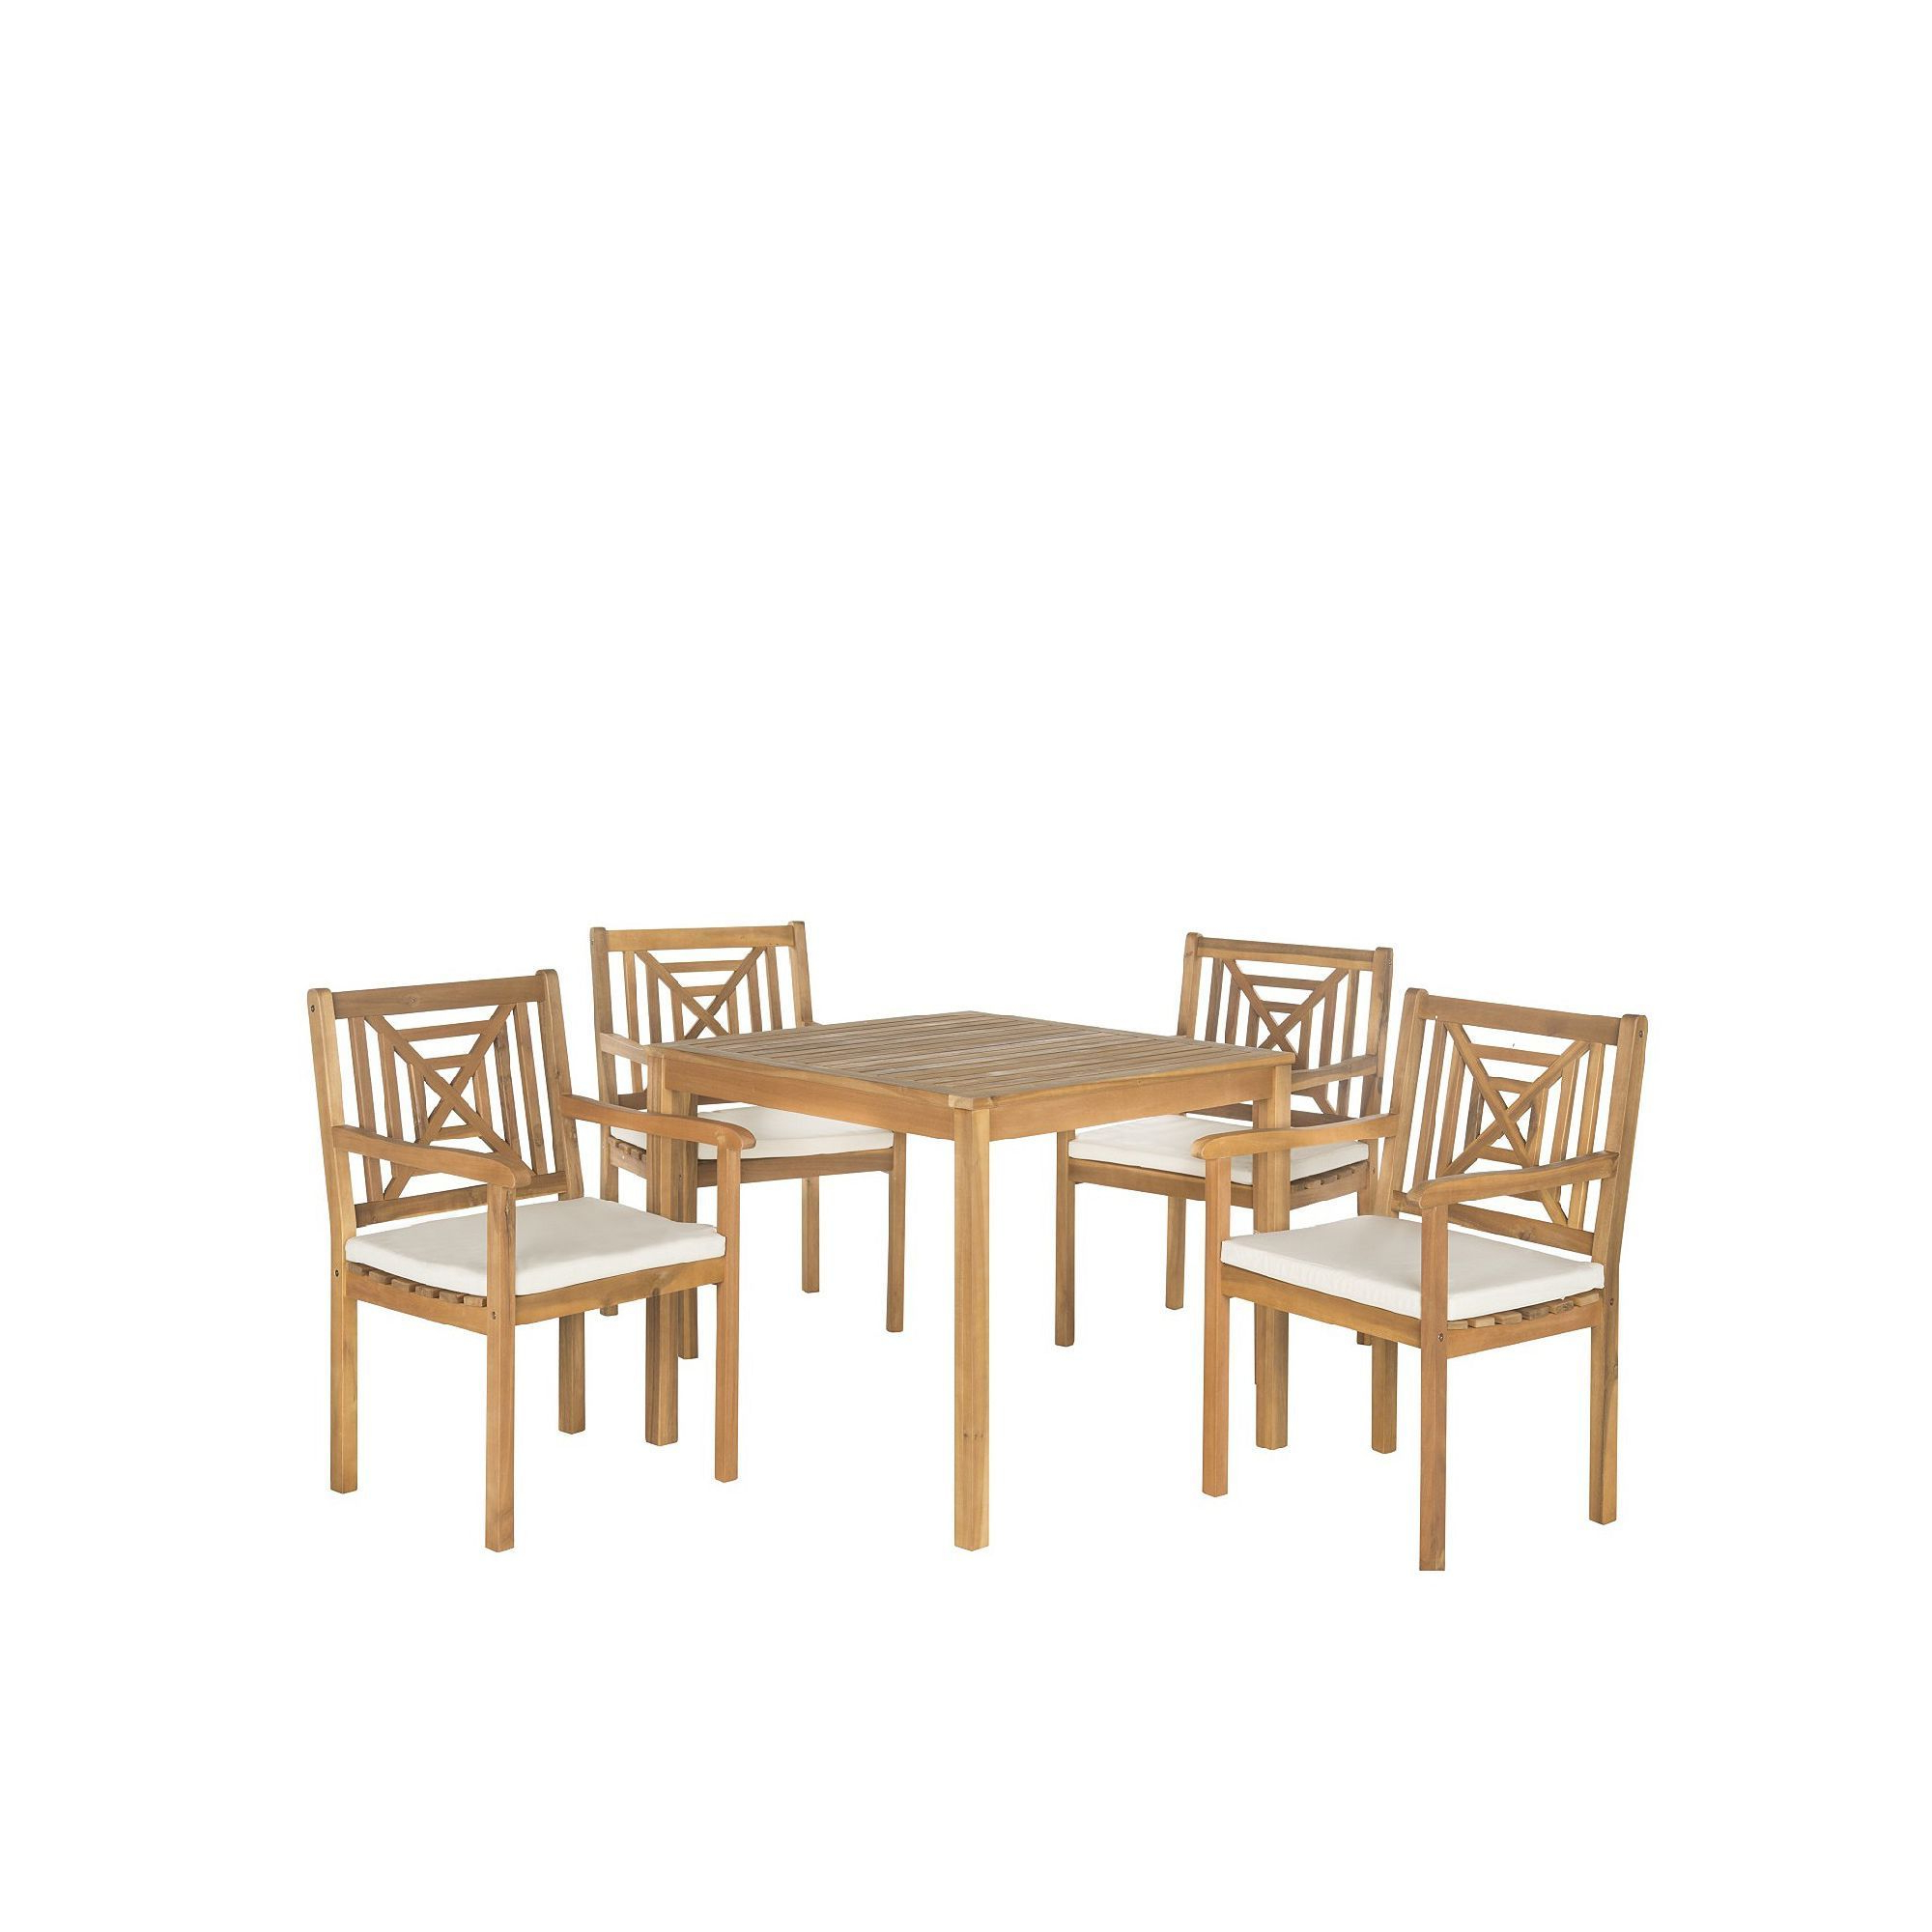 Safavieh Del Mar Indoor / Outdoor Dining Table & Chair 5 Piece Set Within Well Liked Delmar 5 Piece Dining Sets (View 19 of 25)